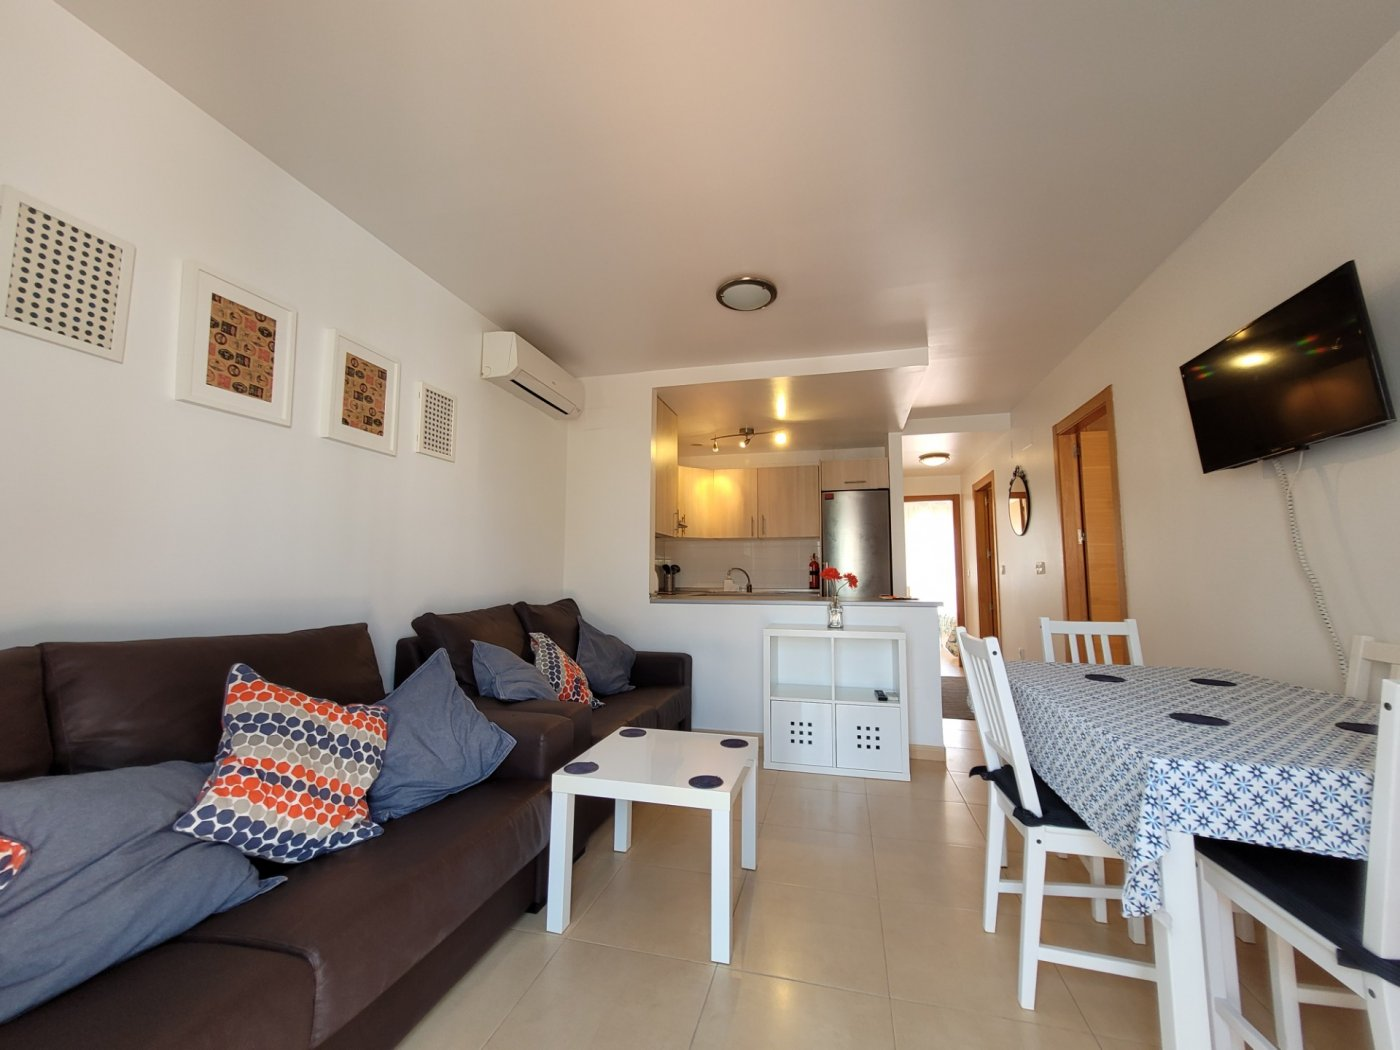 Flat ref 3523 for rent in *condado De Alhama Spain - Quality Homes Costa Cálida